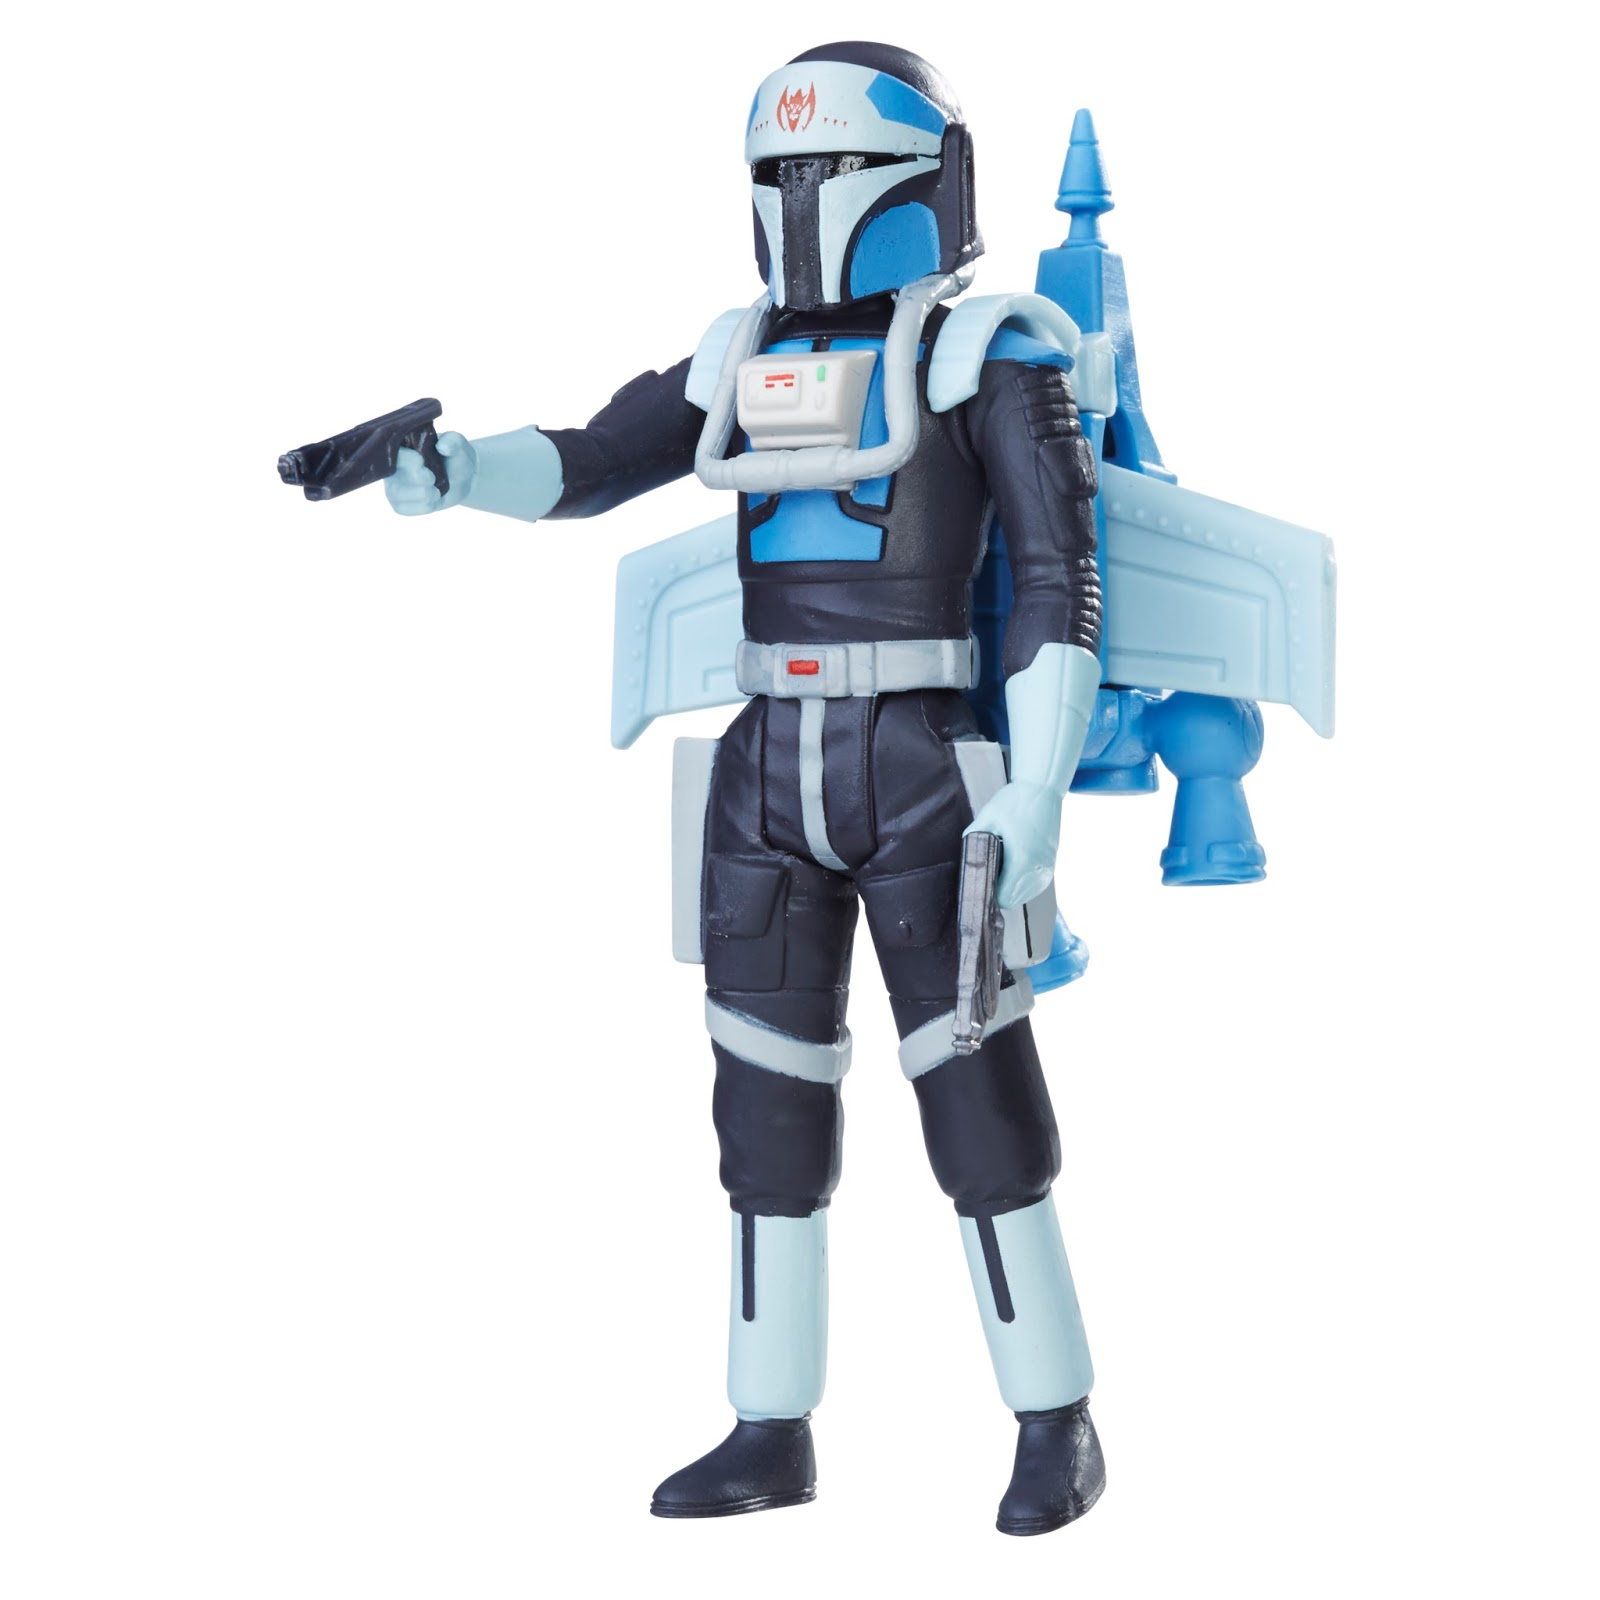 New Star Wars Toys : Hasbro unveils images of new star wars toys the